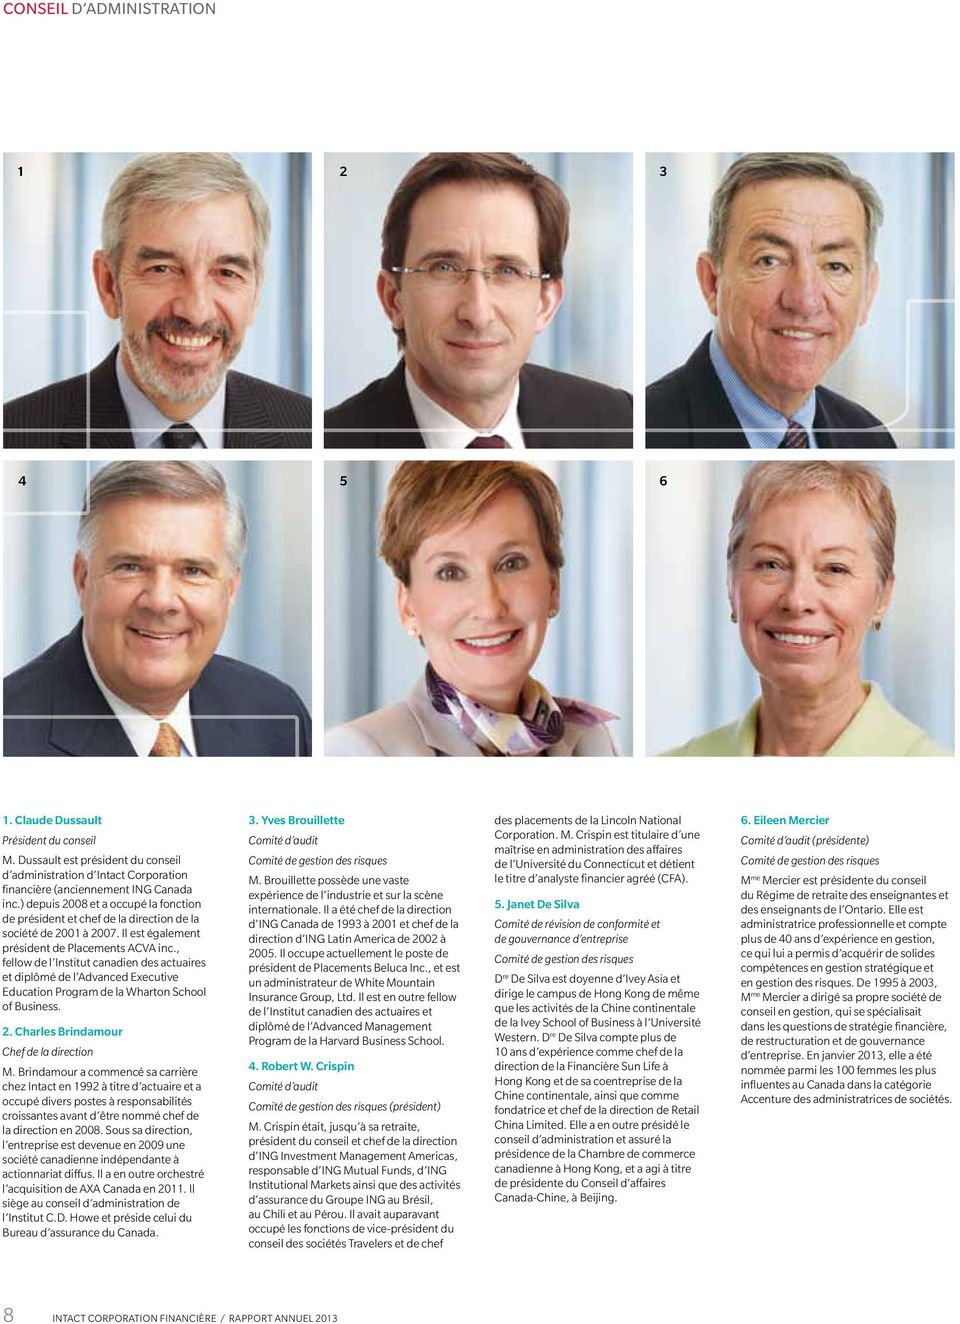 , fellow de l Institut canadien des actuaires et diplômé de l Advanced Executive Education Program de la Wharton School of Business. 2. Charles Brindamour Chef de la direction M.